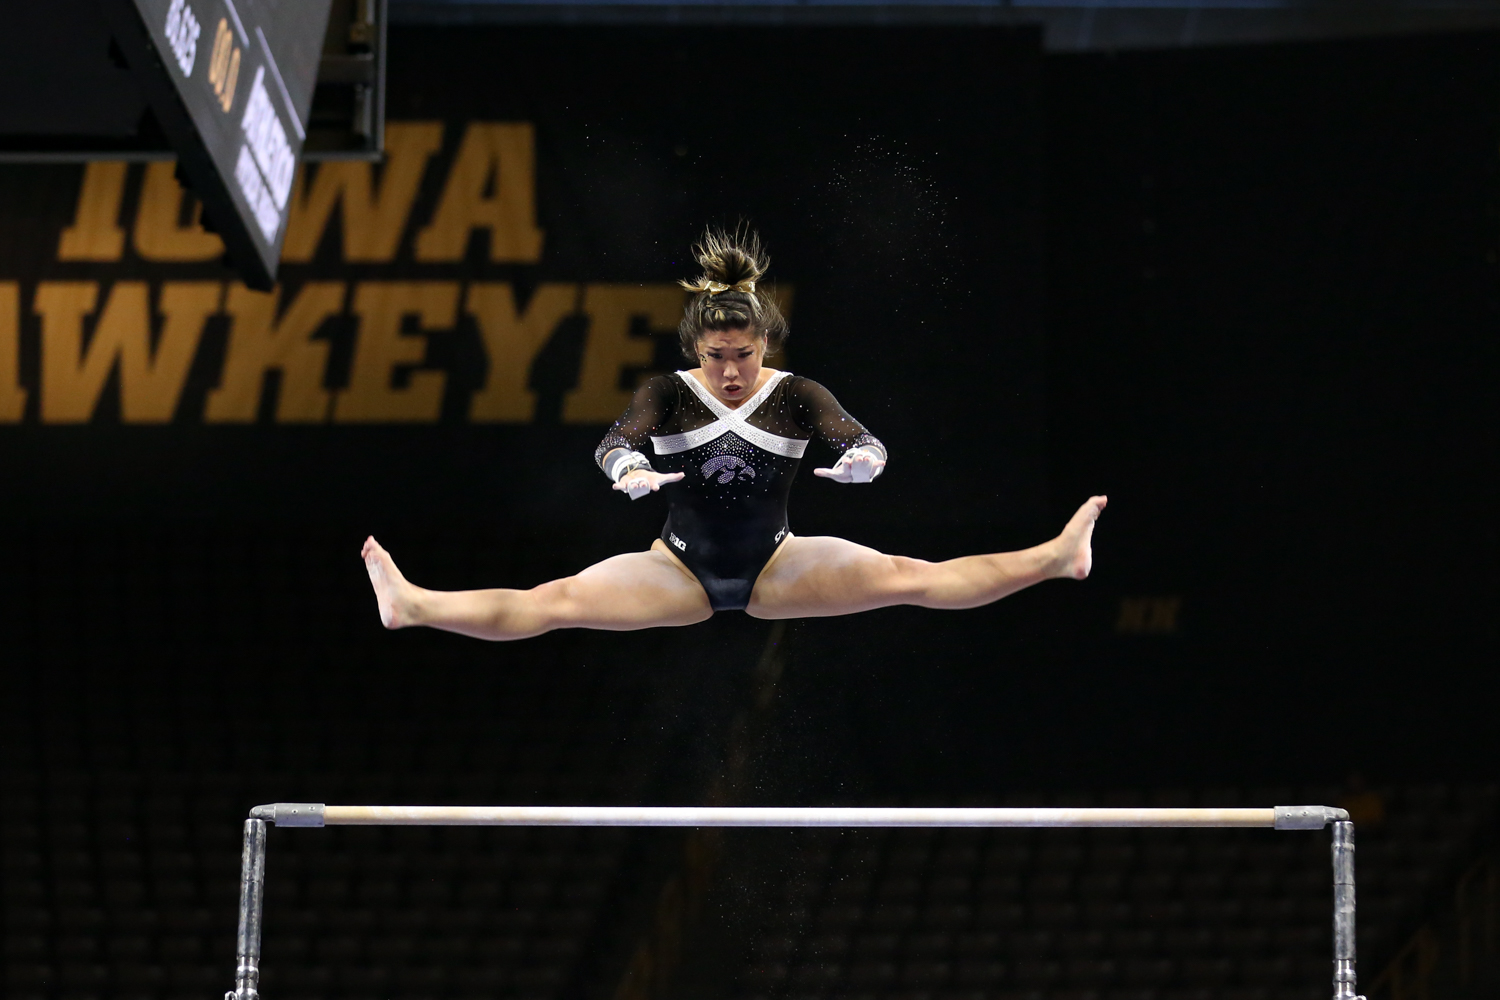 Iowa gymnast Nicole Chow performs on the uneven bars during a gymnastics meet against Rutgers on Saturday, Jan. 26, 2019. The Hawkeyes defeated the Scarlet Knights 194.575 to 191.675.